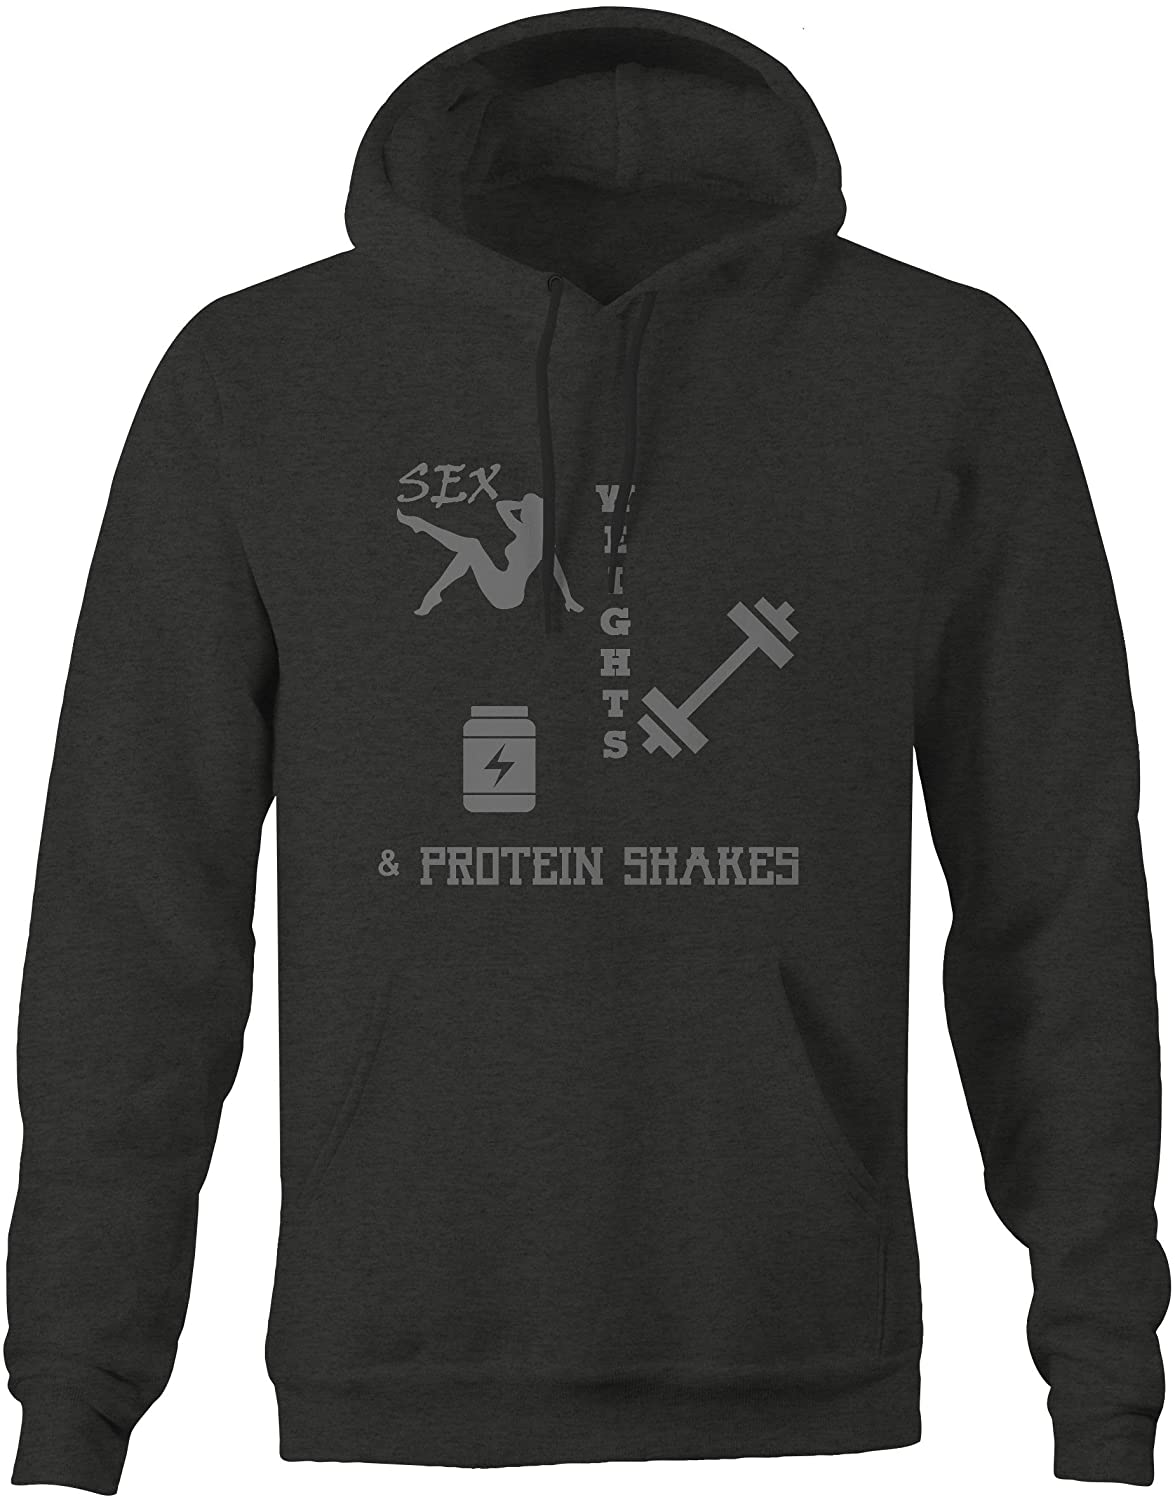 Sex Protein Shakes Large Stealth Square Gym Training Sweatshirt Weights